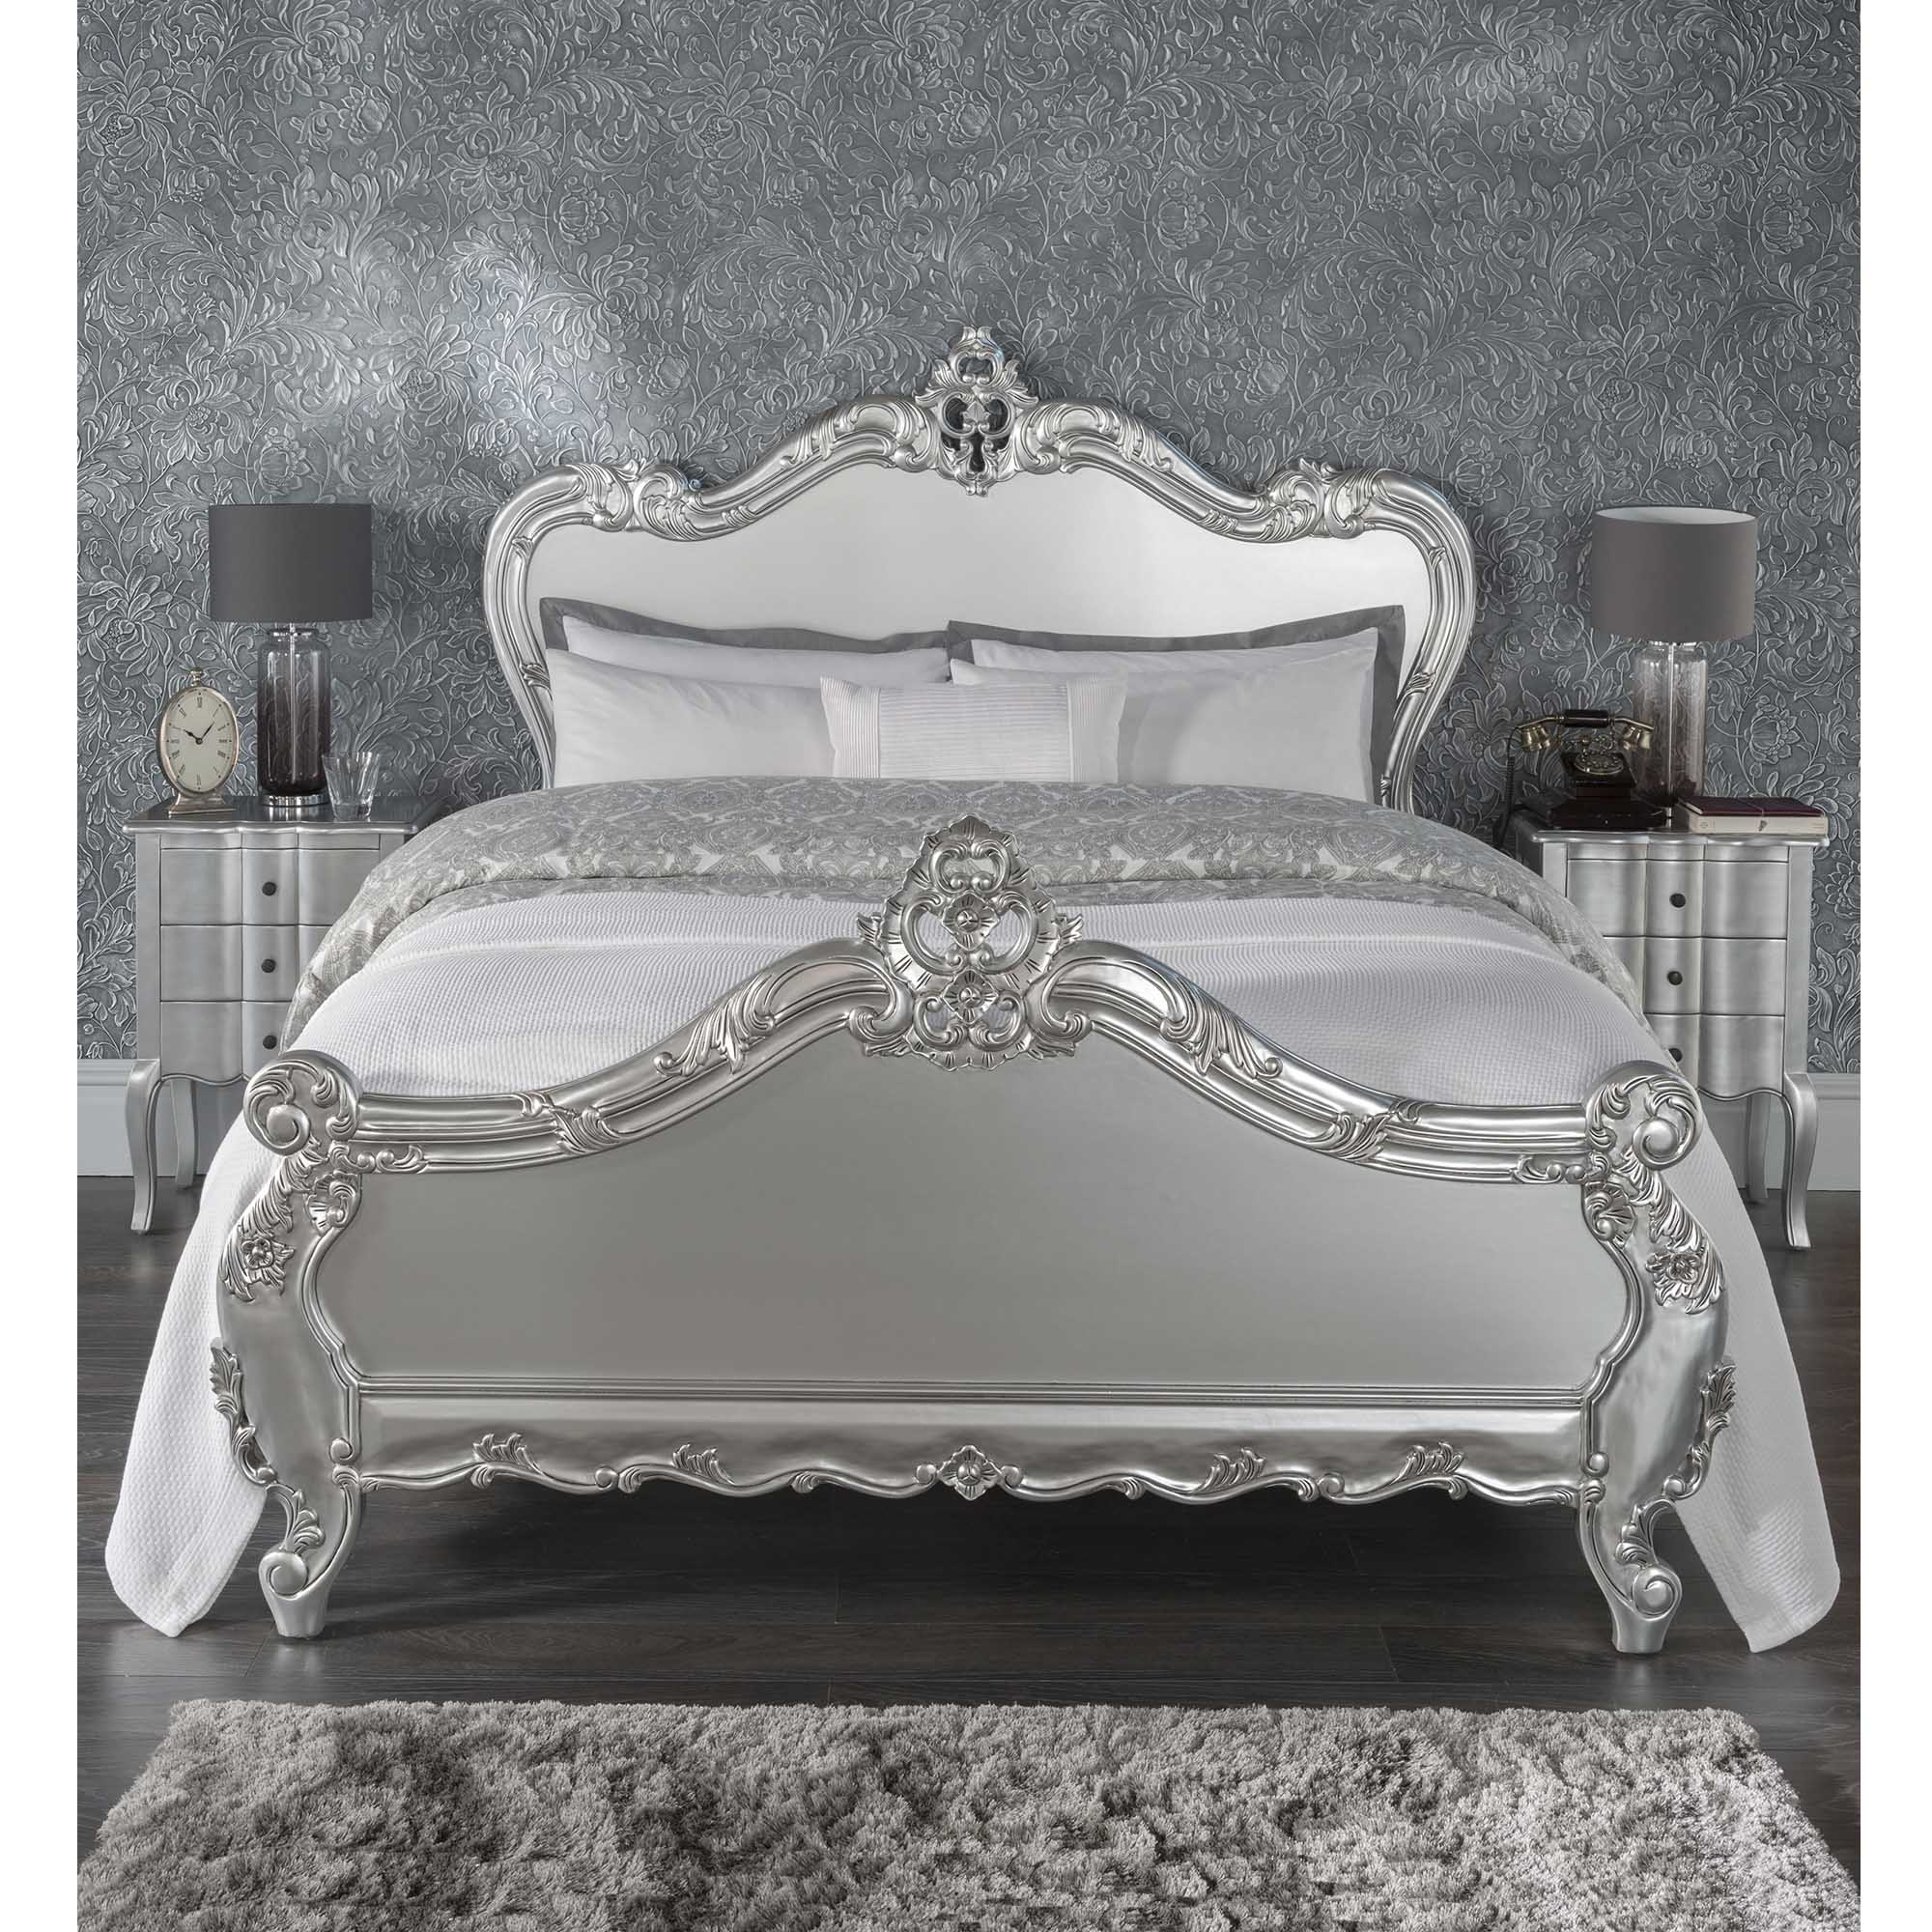 Antique french style bed french silver carved bed bedroom furniture